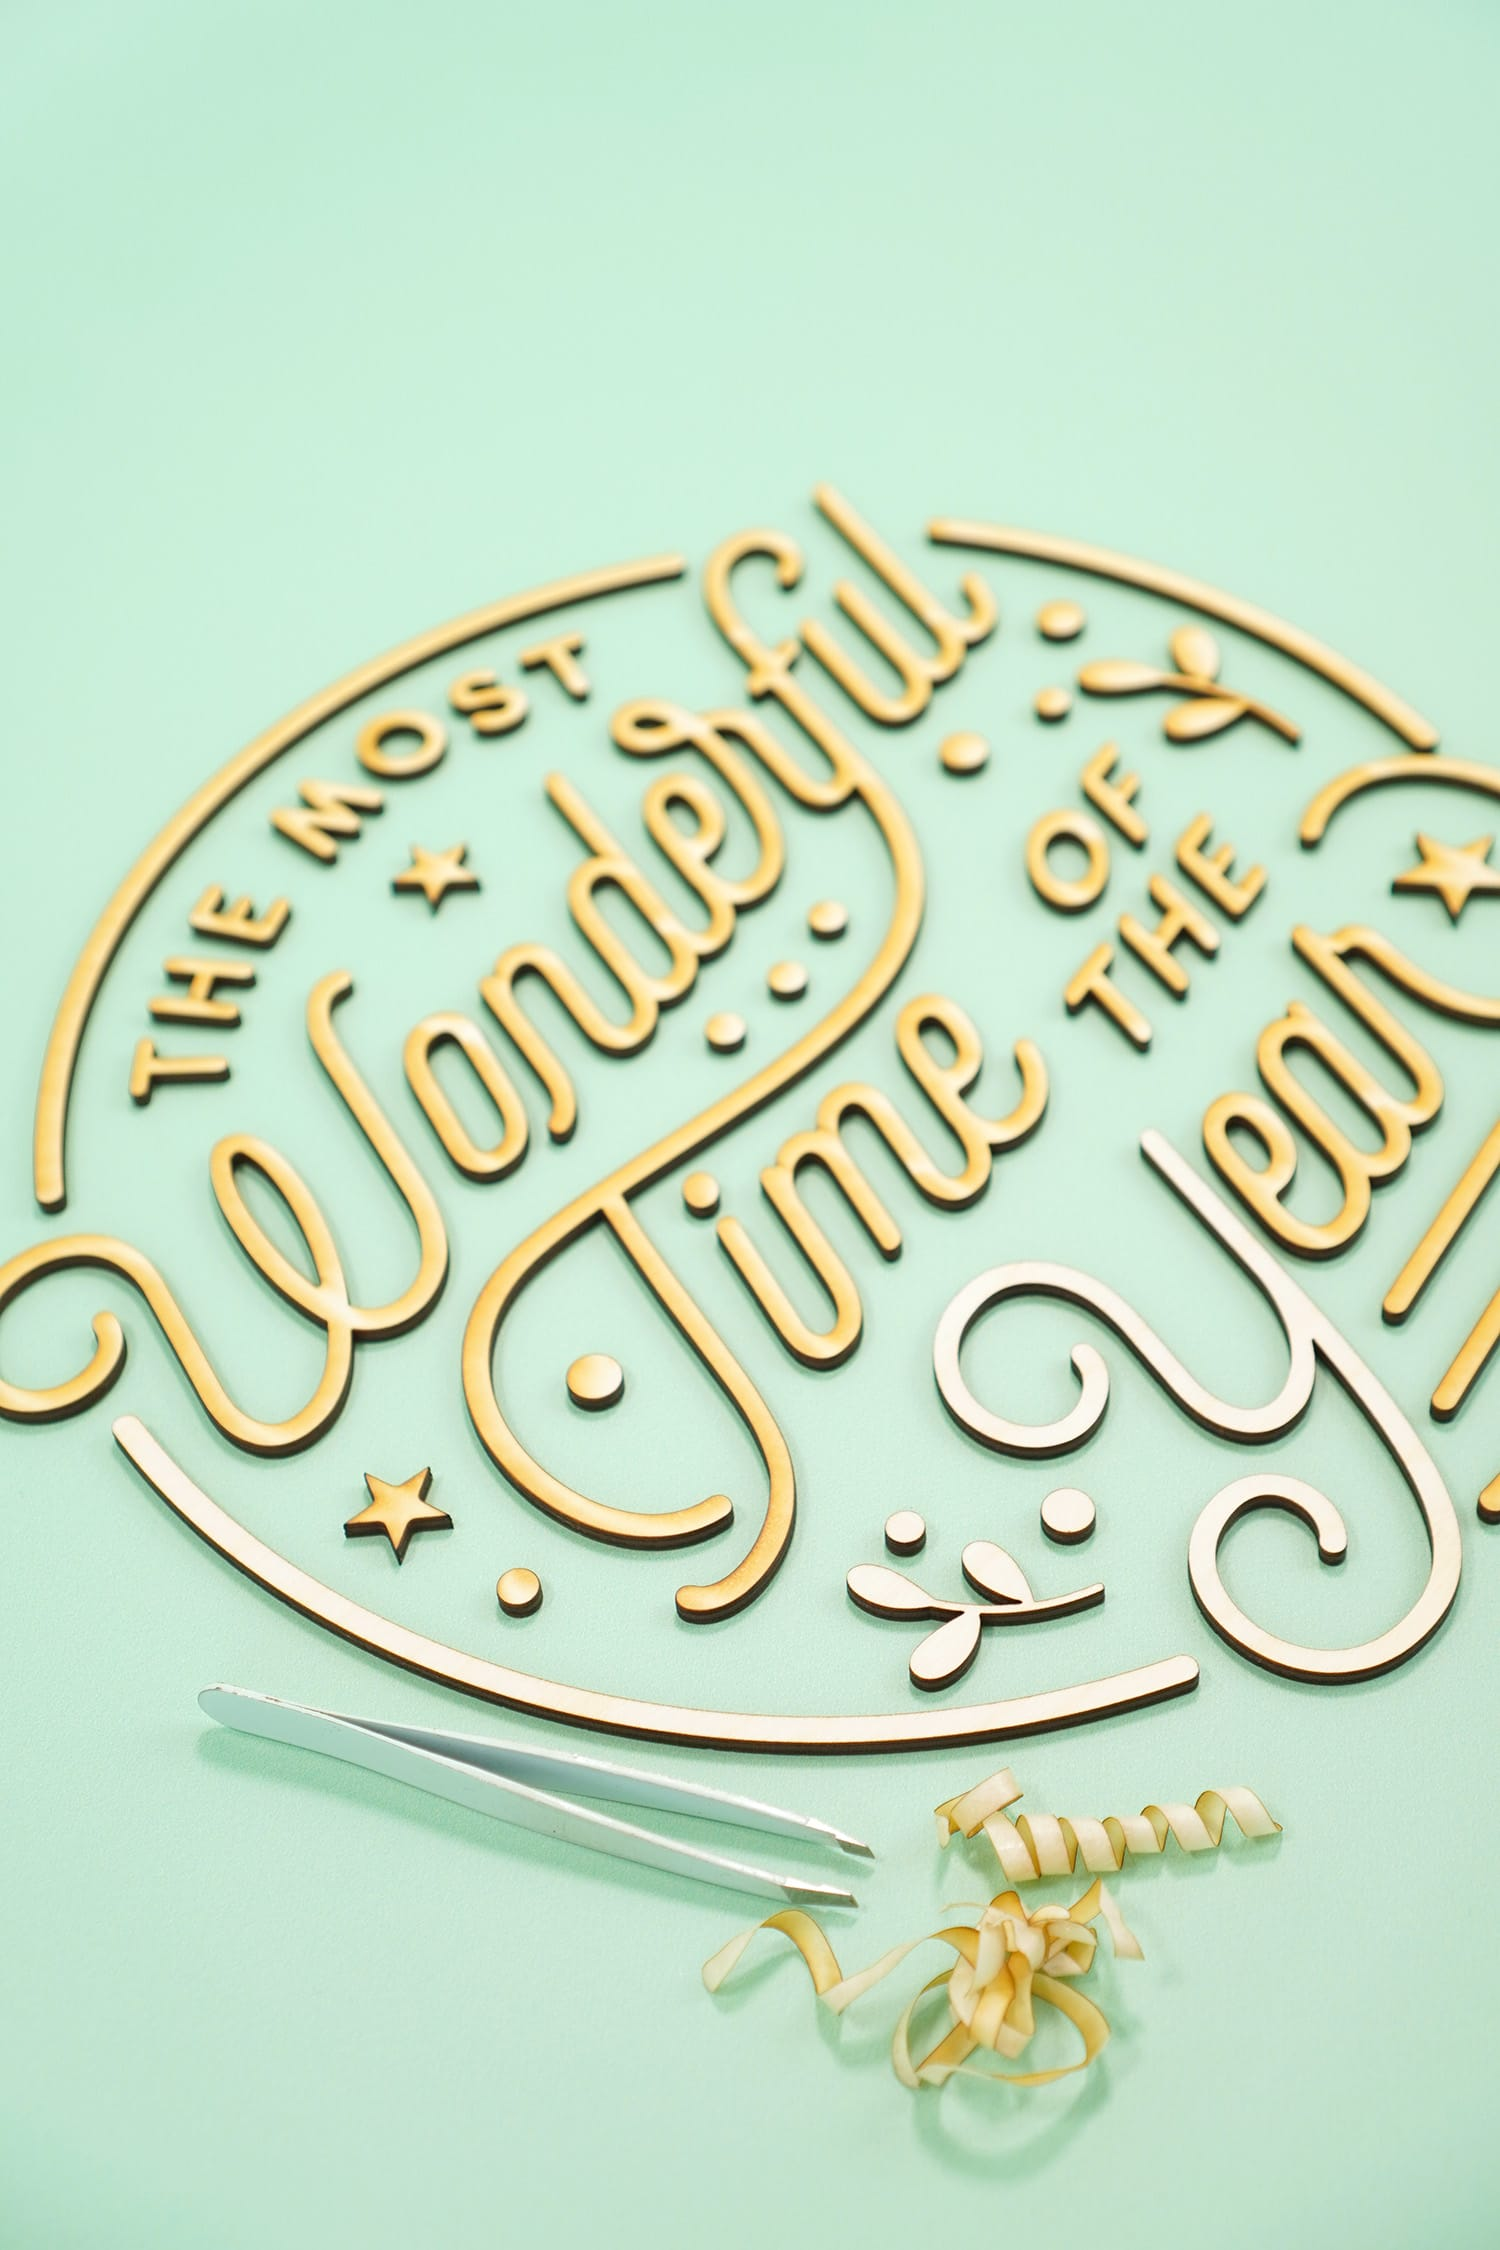 """""""The Most Wonderful Time of the Year' Laser Cut Wood Sign pieces with tweezers and pile of unmasked masking paper tape on mint green background"""